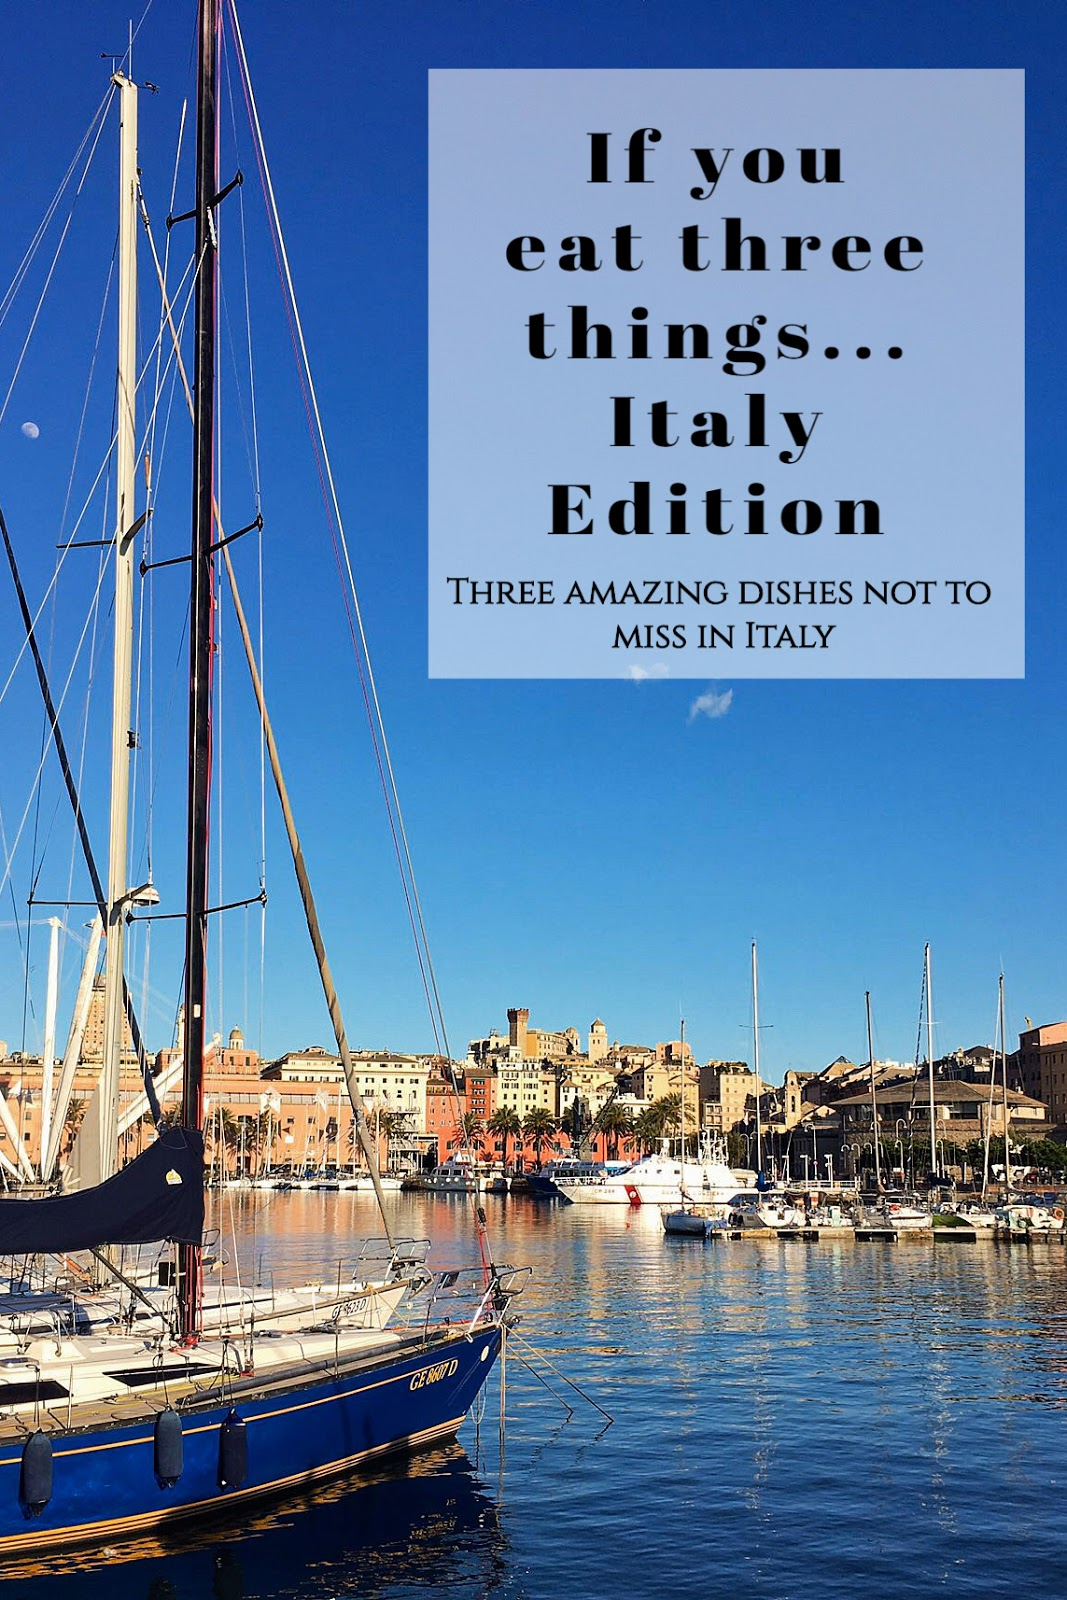 If You Eat Three Things Italy Edition